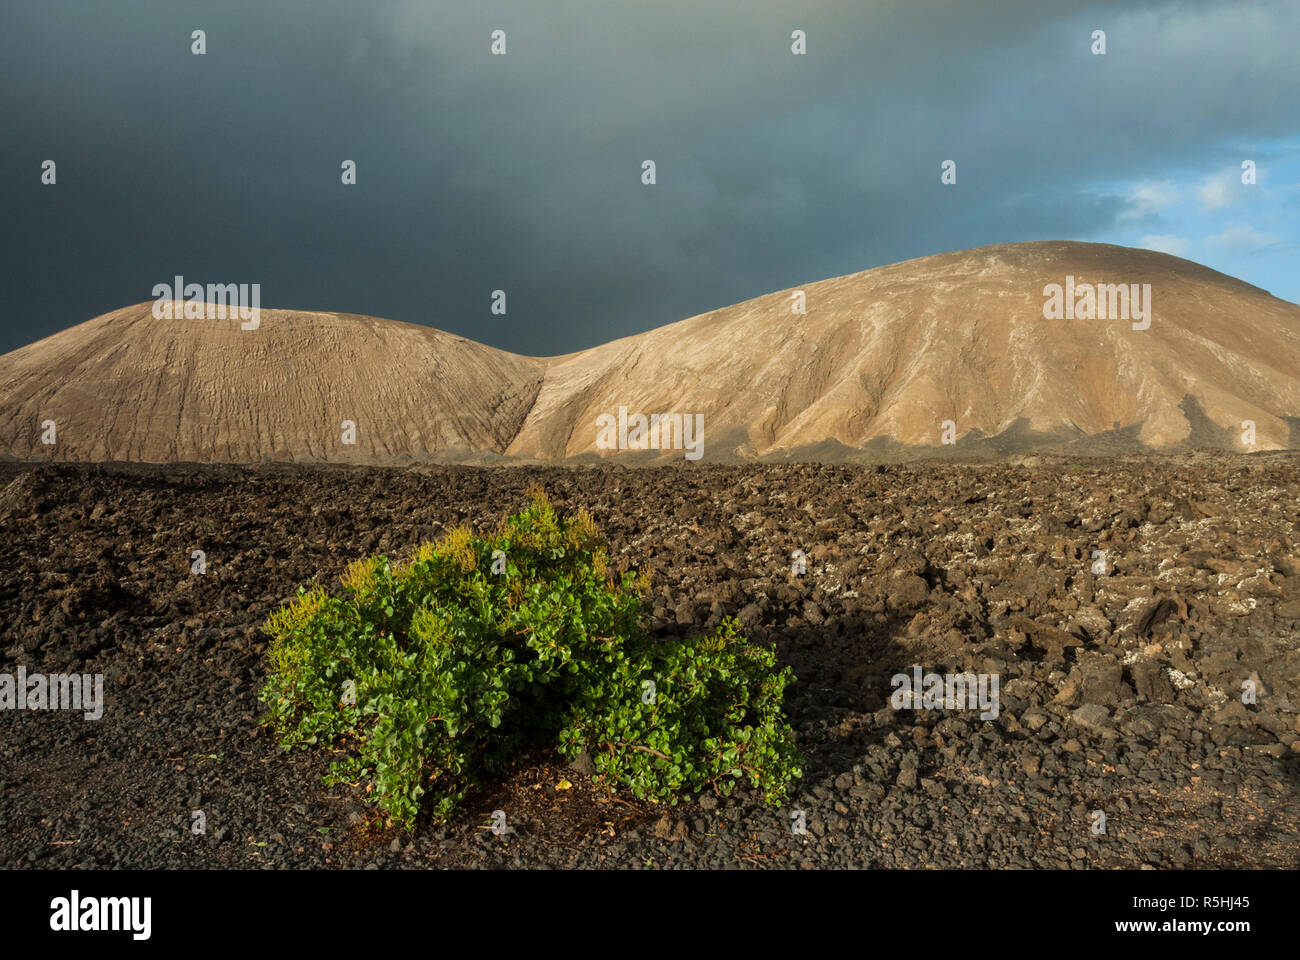 Volcanos and lava fields forming a dramatic landscape with little growing here in the Timanfaya National Park, Lanzarote, Canary islands. - Stock Image